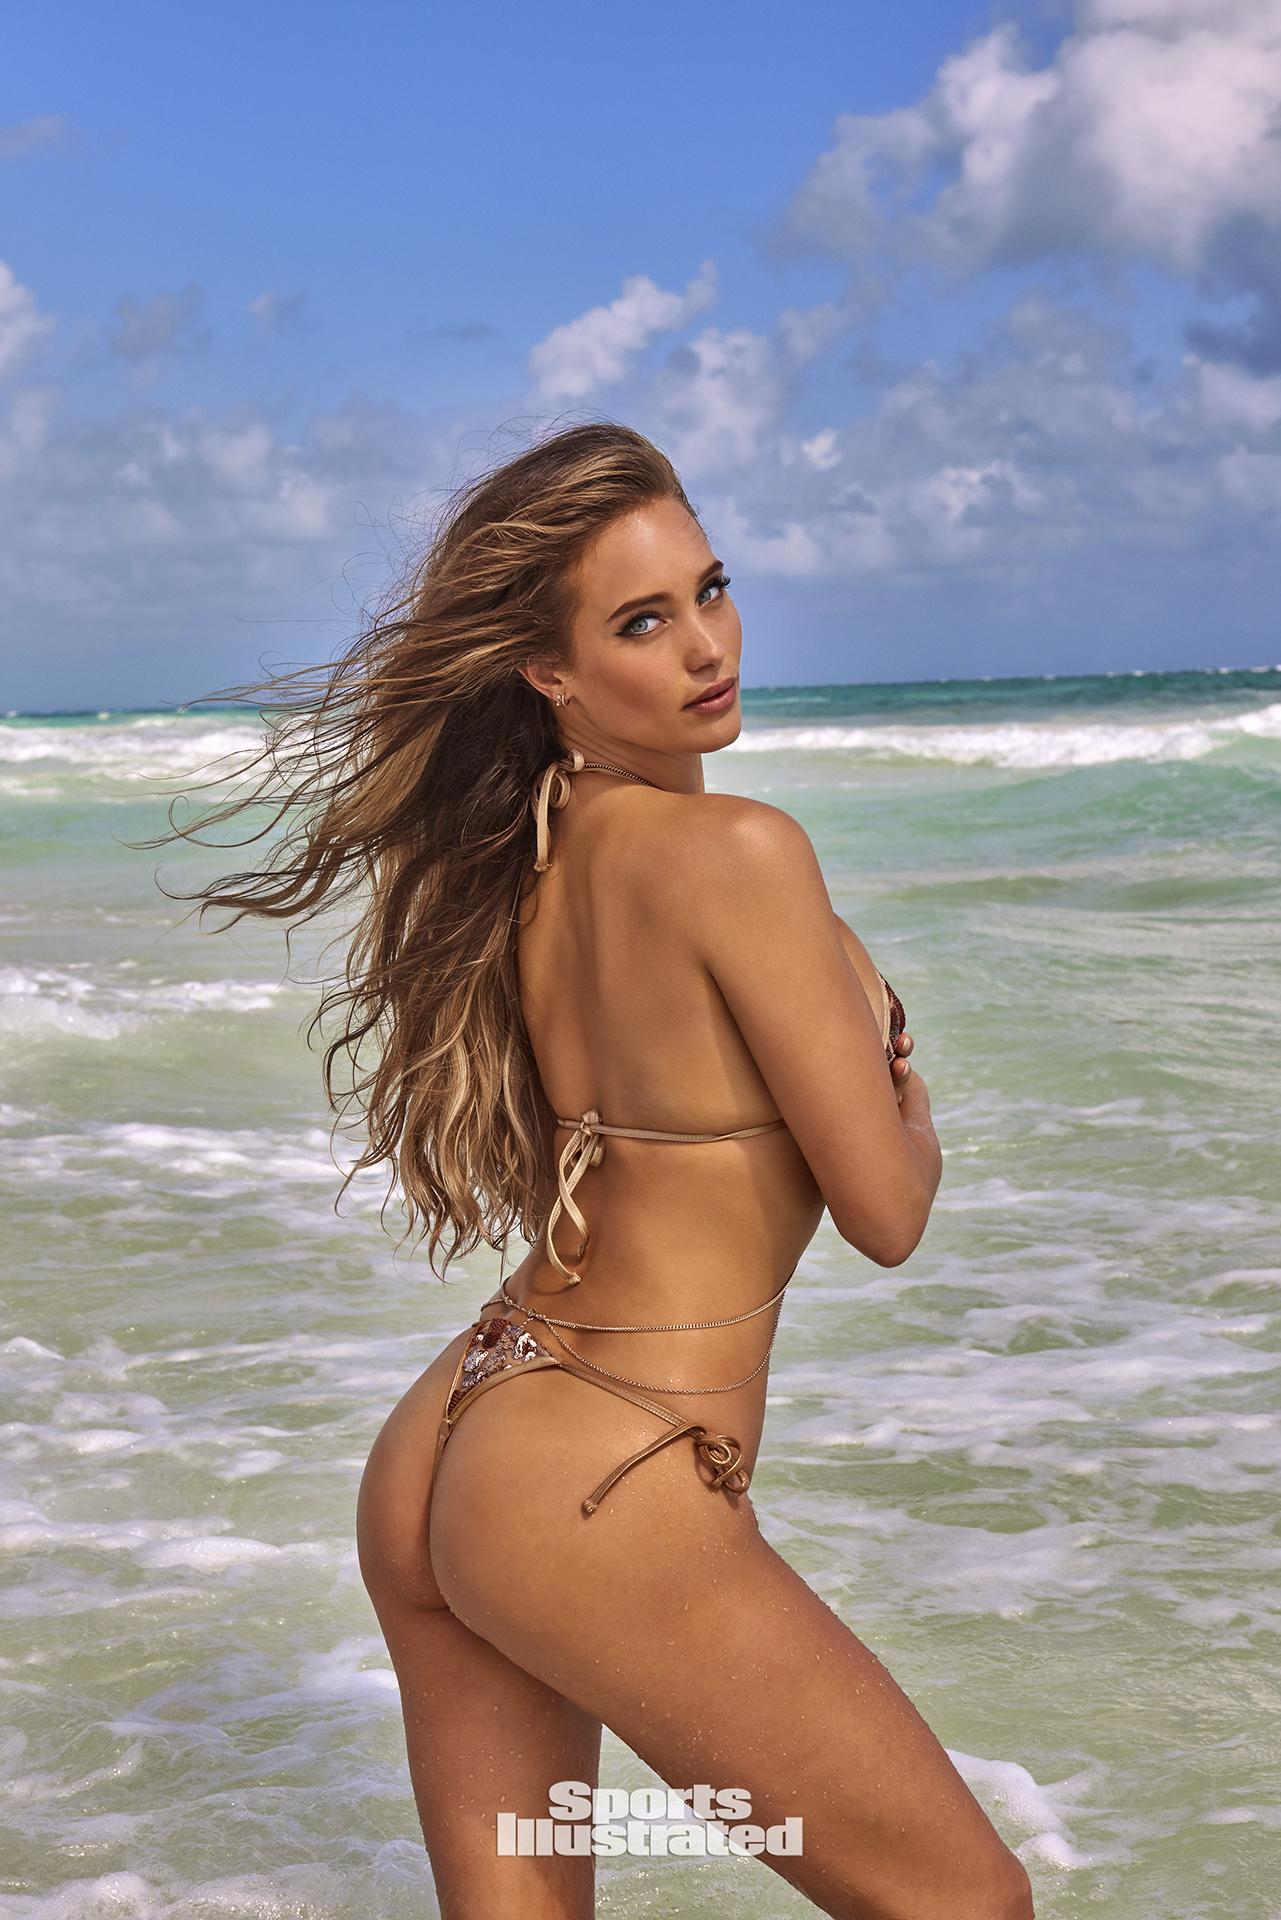 hannah jeter si swimsuit 2017 bikini string thong sexy hot nude naked